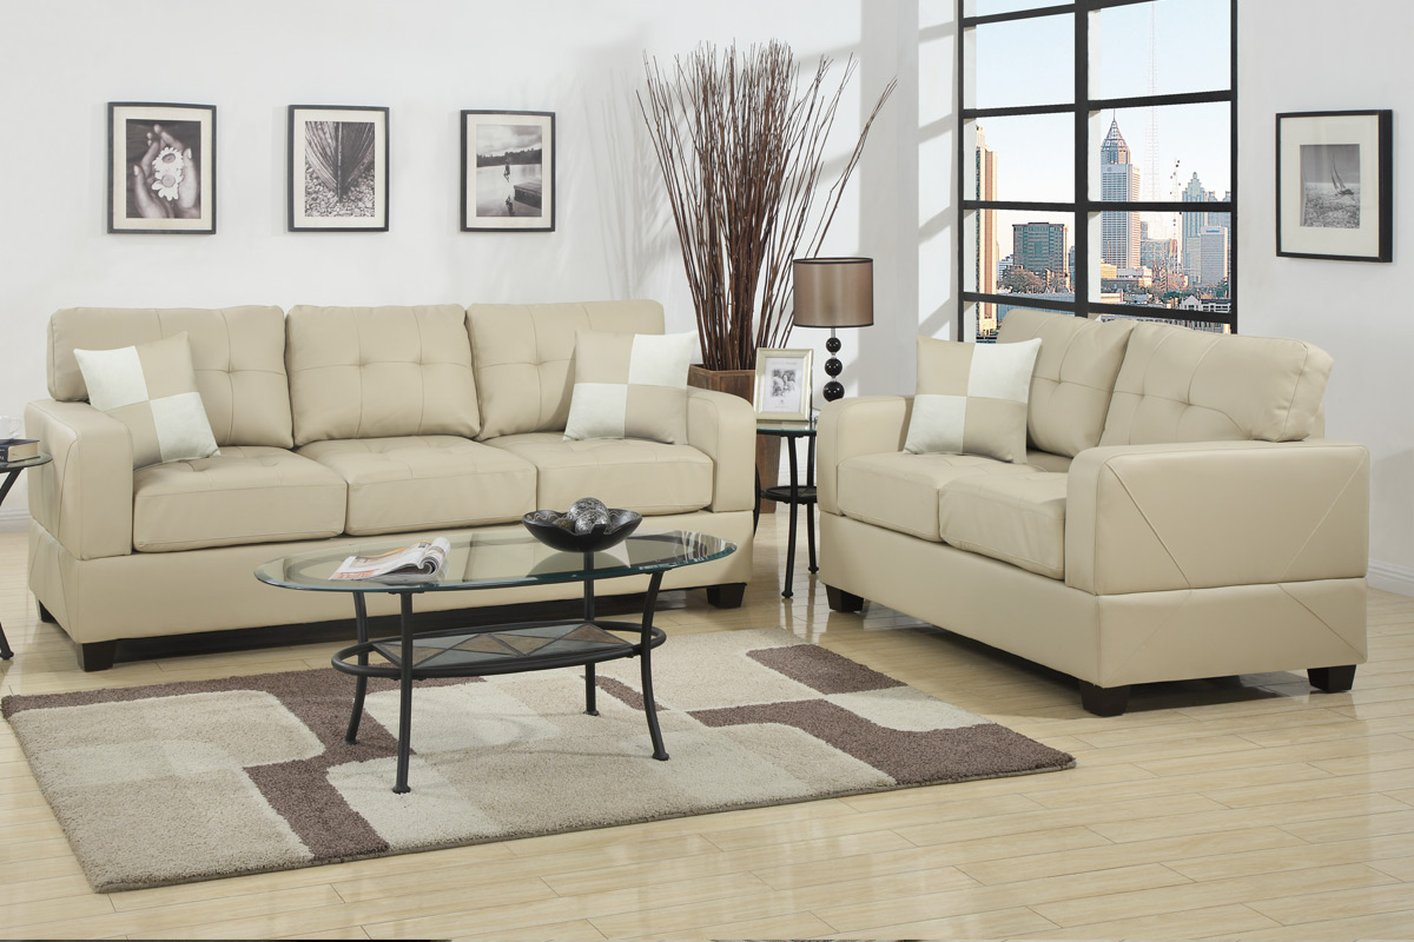 poundex chase f7342 beige leather sofa and loveseat set steal a sofa furniture outlet los. Black Bedroom Furniture Sets. Home Design Ideas